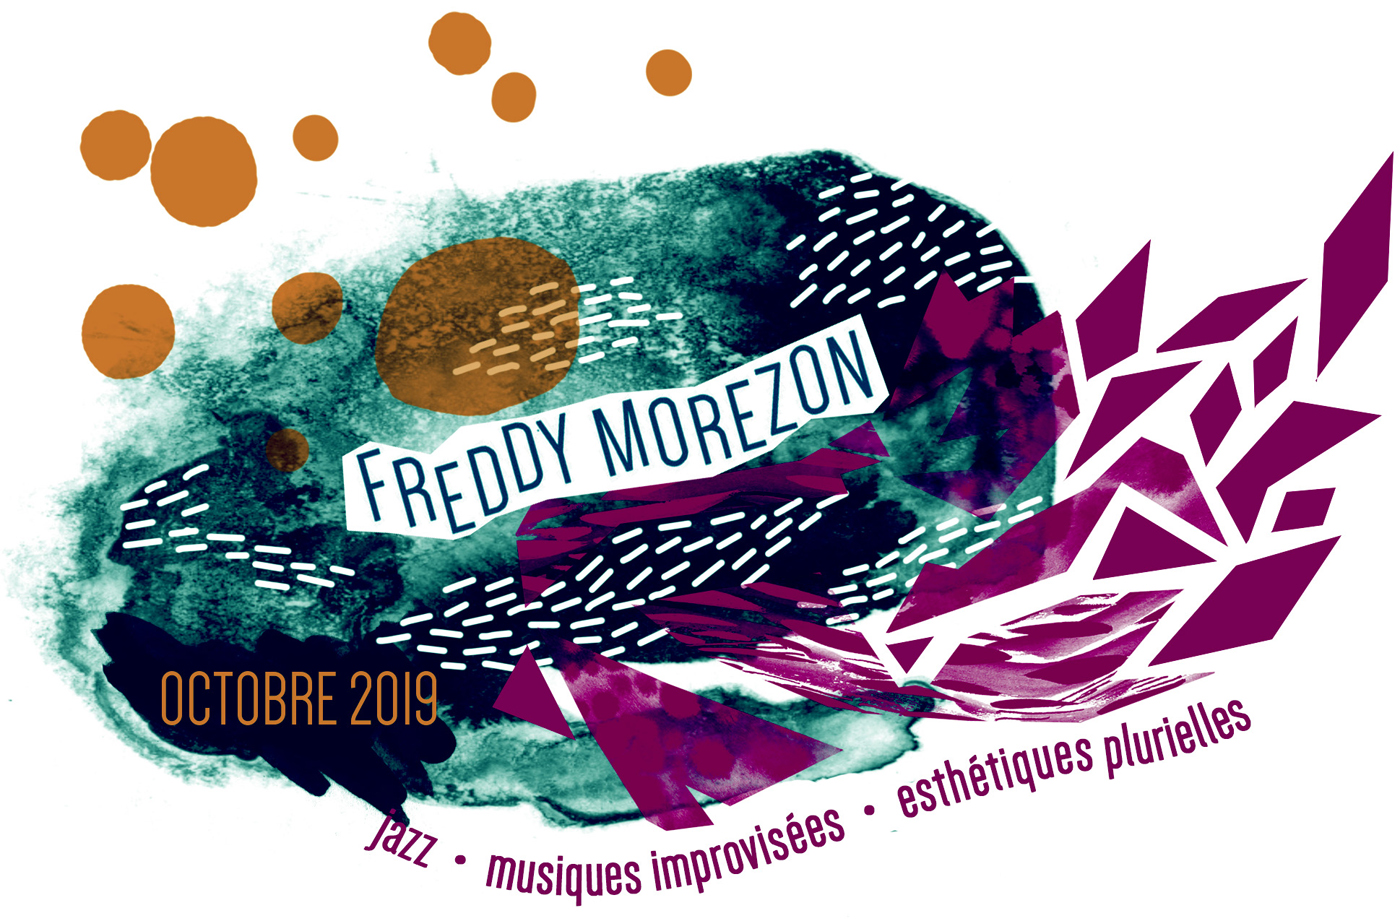 Freddy Morezon - Newsletter octobre 2019